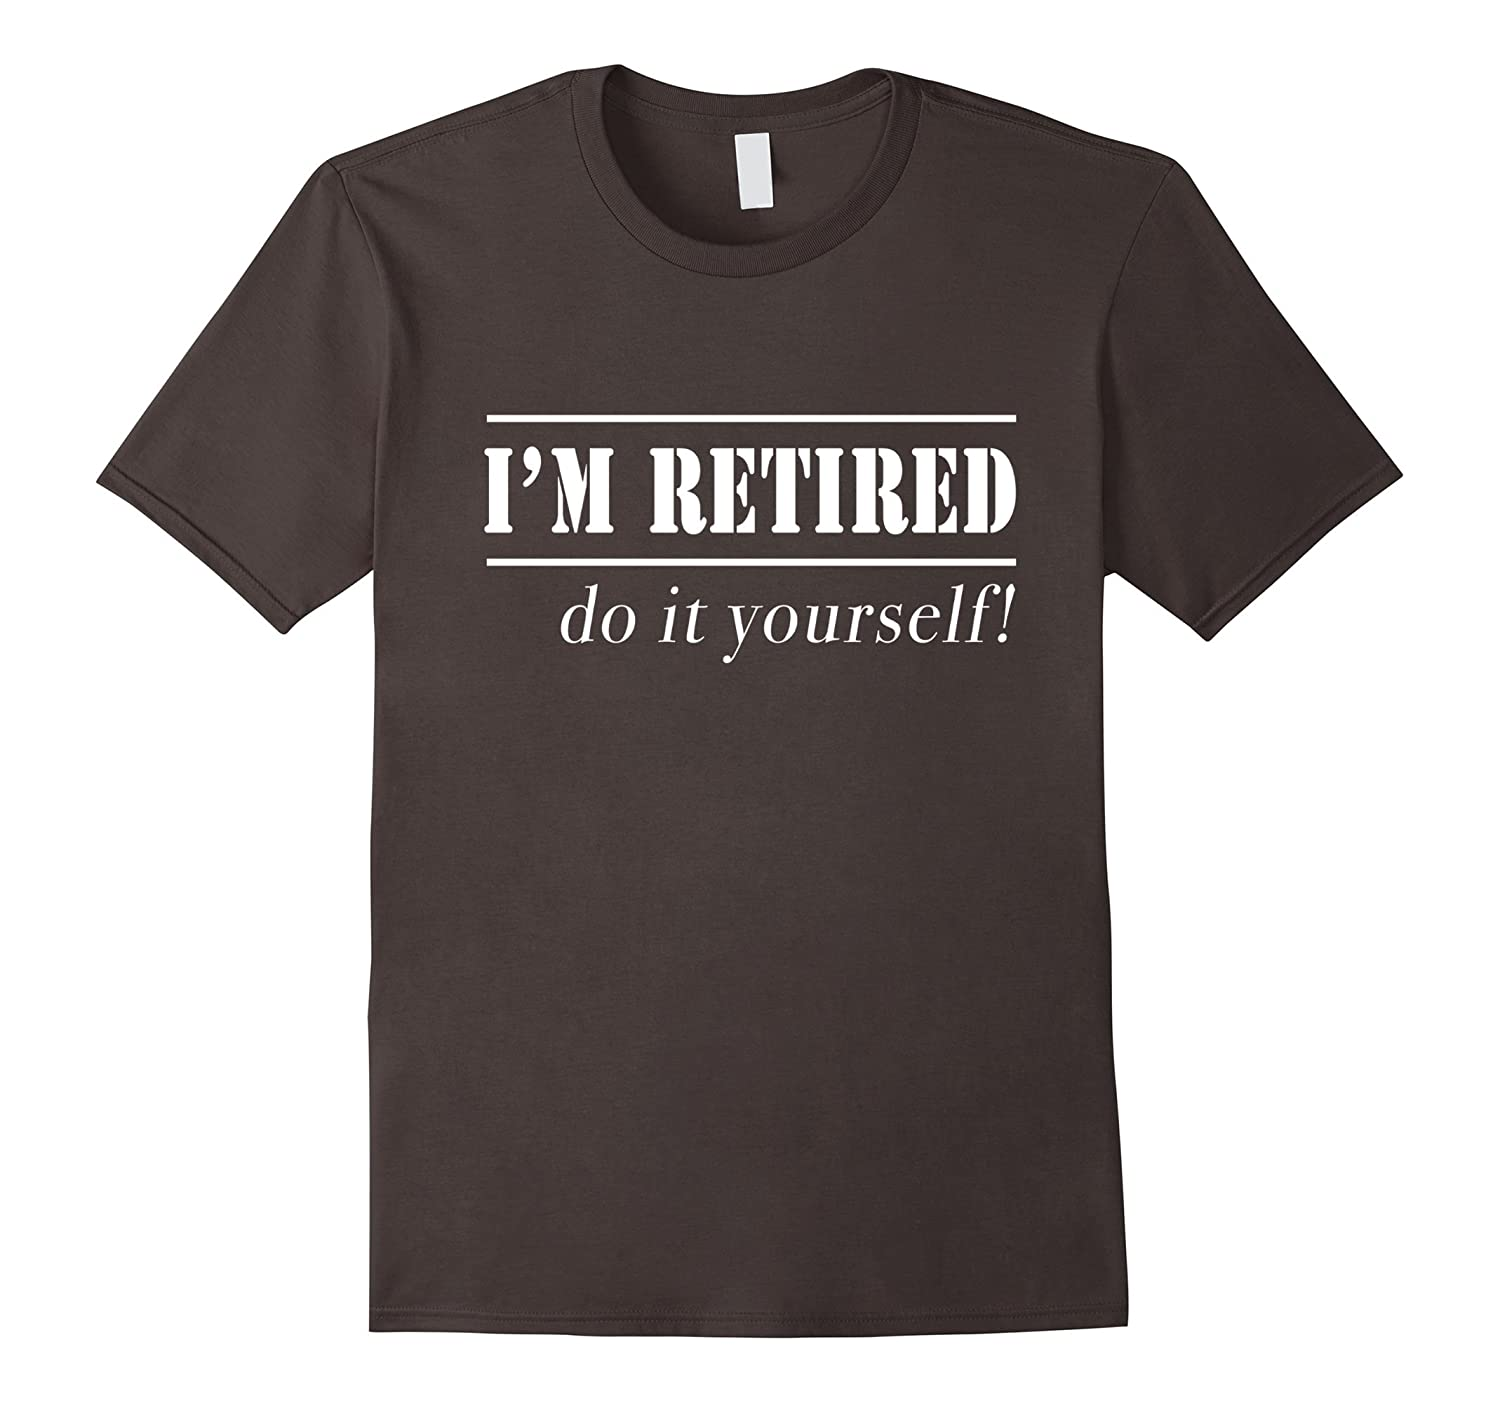 Im retired do it yourself t shirt rt rateeshirt im retired do it yourself t shirt rt solutioingenieria Gallery